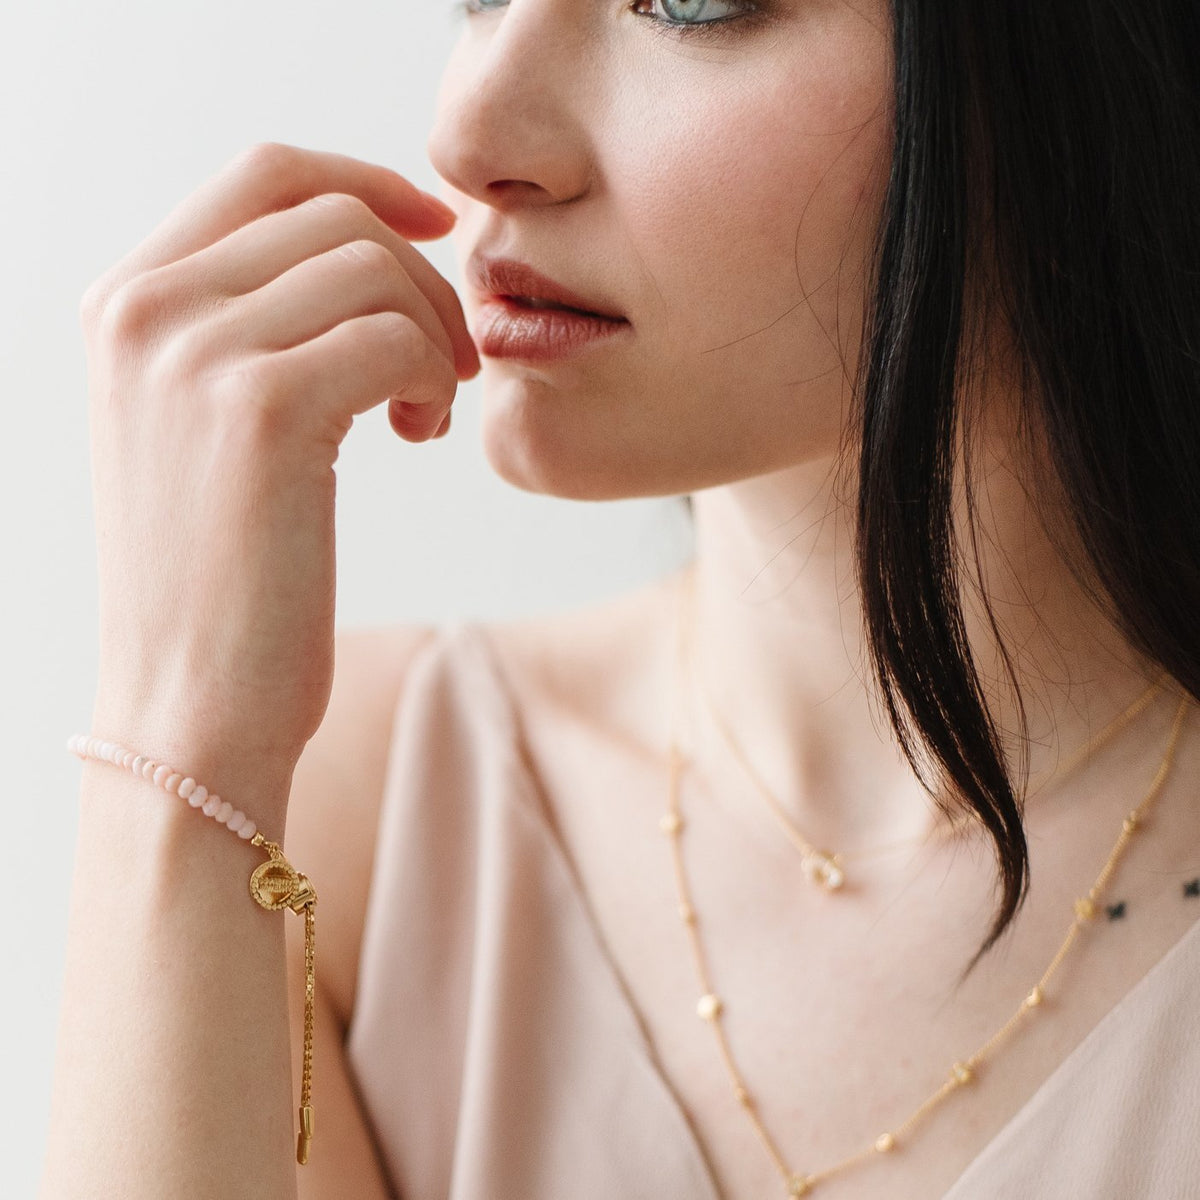 ICONIC ADJUSTABLE BRACELET - PINK OPAL & GOLD - SO PRETTY CARA COTTER